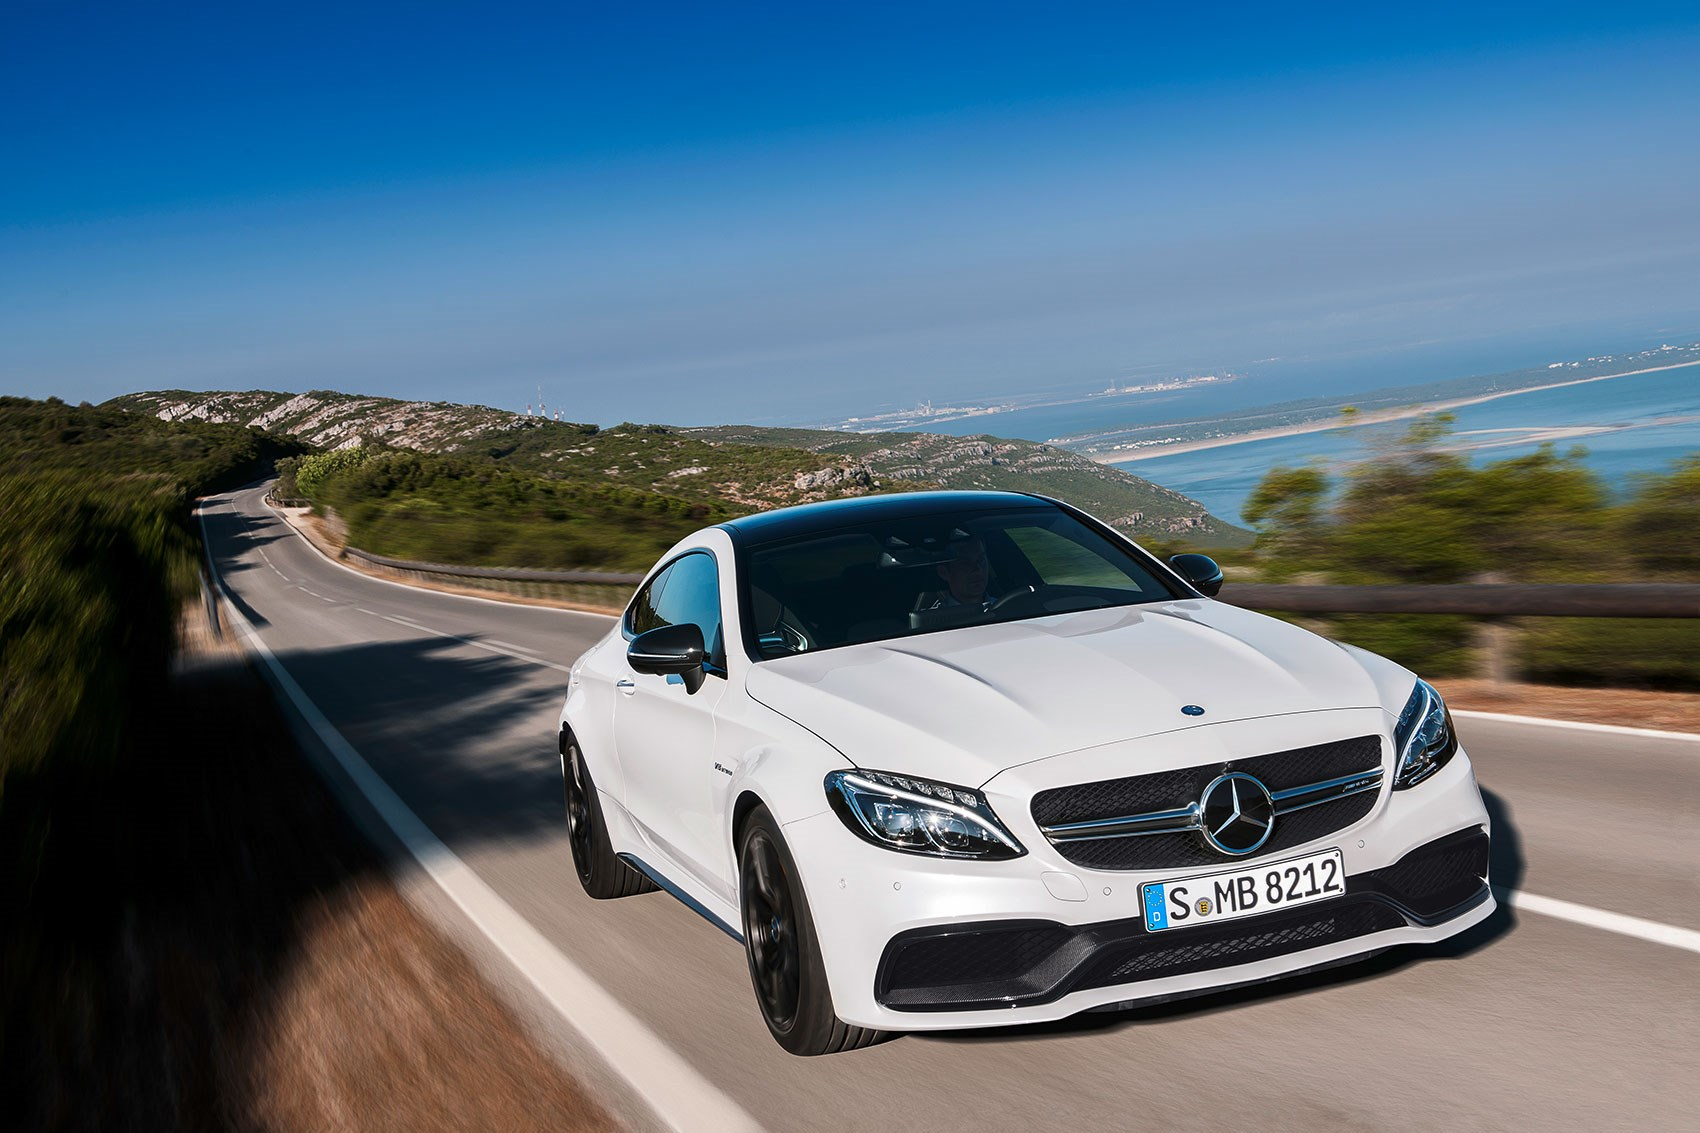 Mercedes c class coupe hits the gym meet 2016 39 s new amg c63 car magazine - Mercedes classe c coupe amg ...